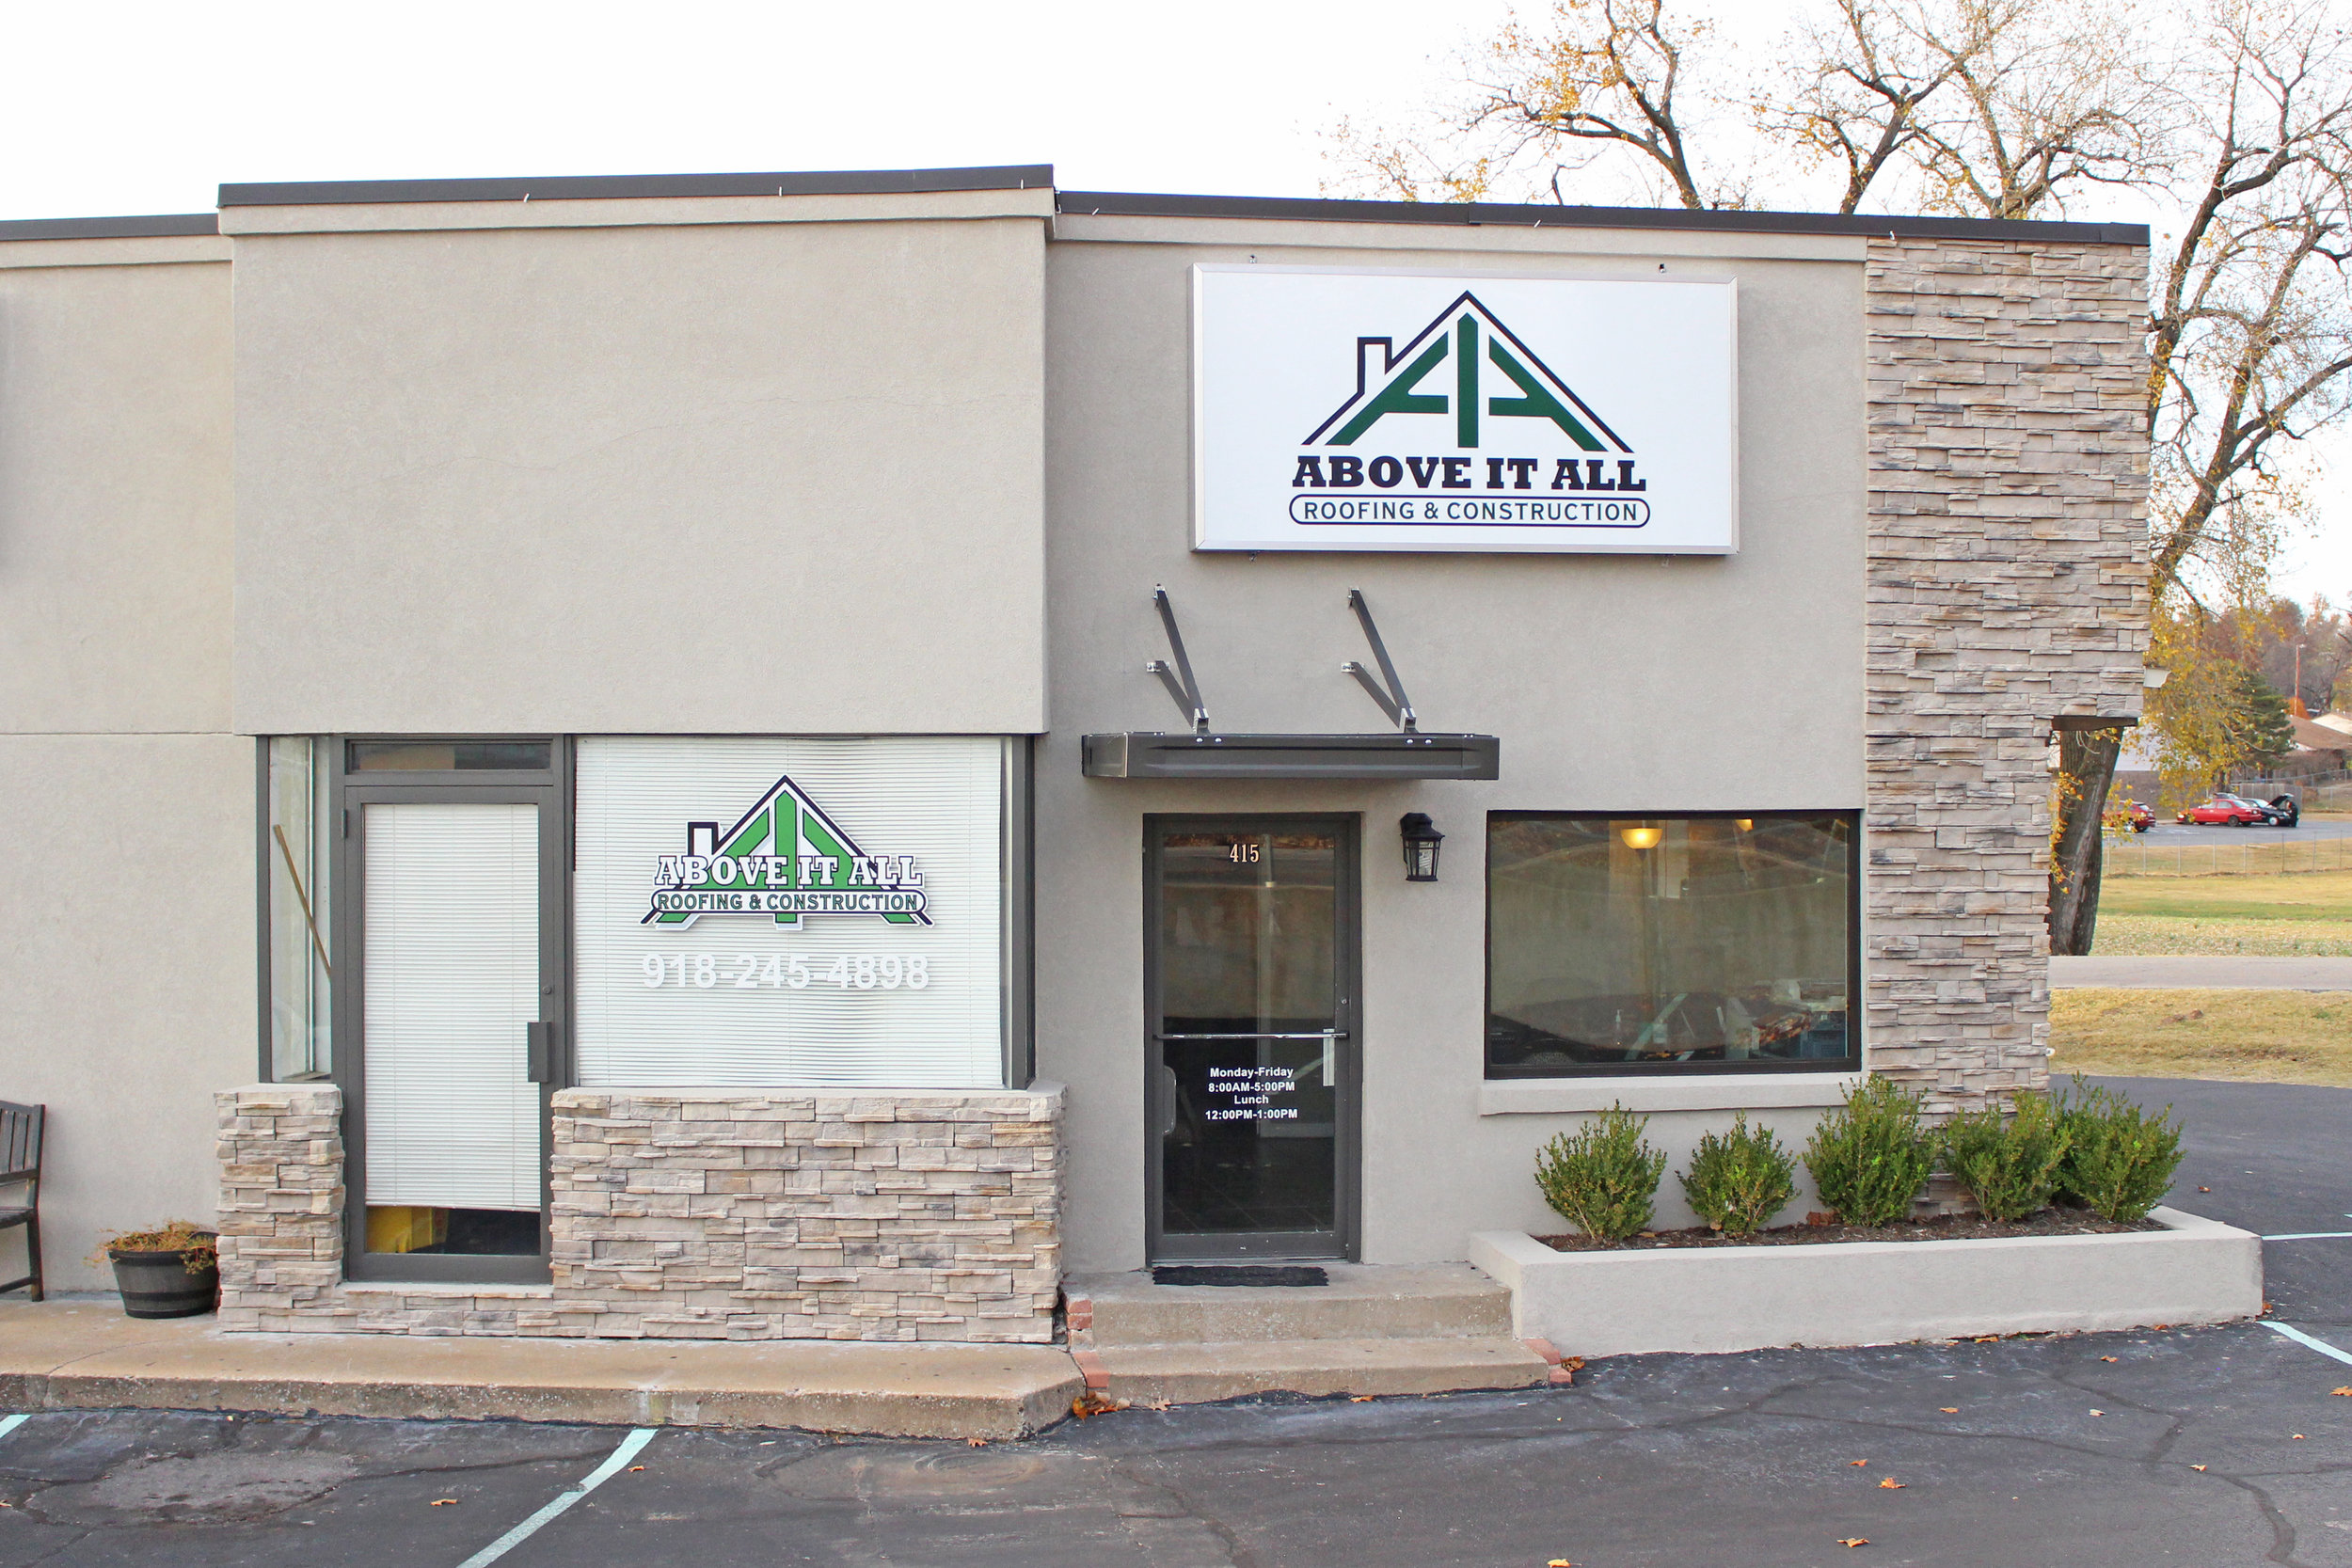 above it all roofing & construction - livi lee's corner 415 east broadway street